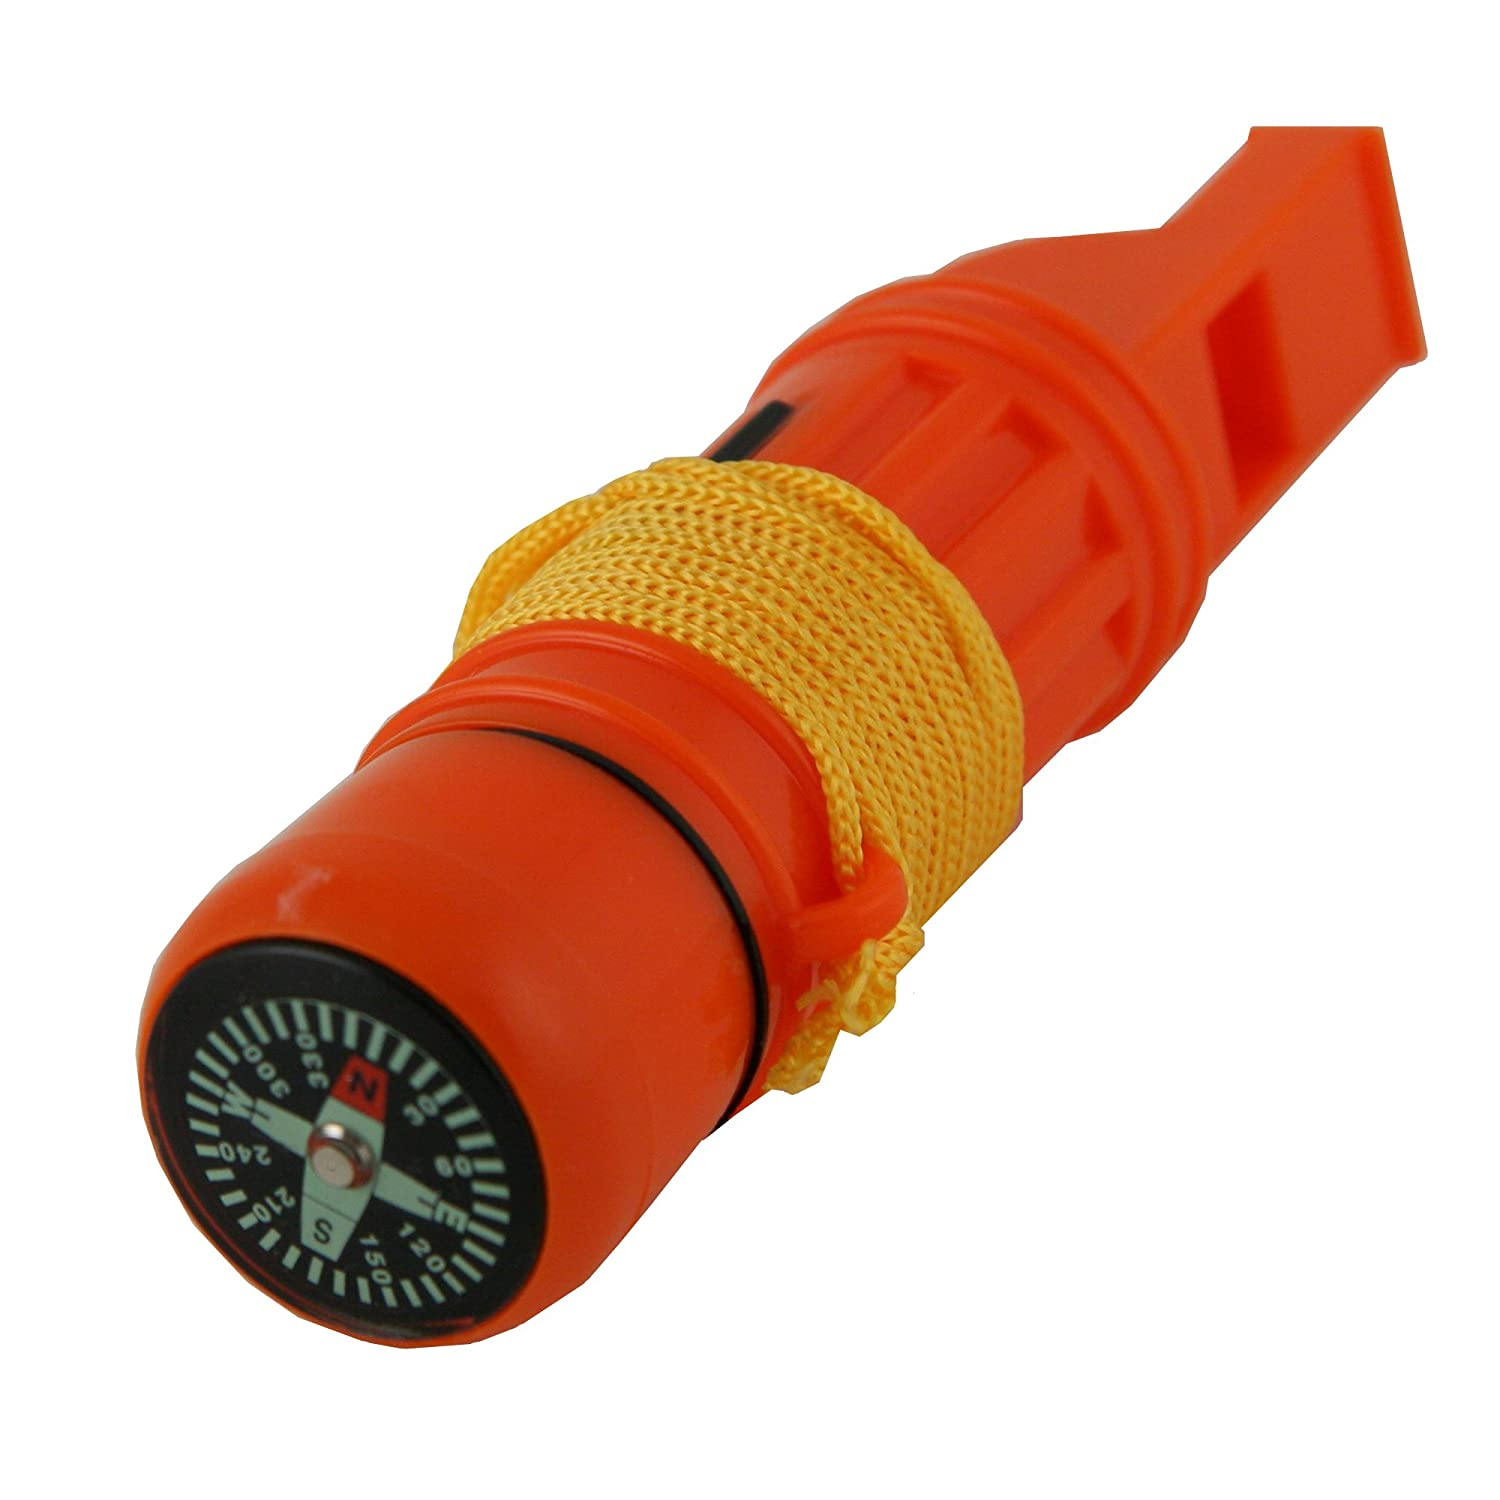 Emergency Zone 5 in 1 Survival Whistle. Compass, Whistle, Water-Resistant Container, Signal Mirror, Ferro Rod. Available in 1, 3, 30, and 300 Pack. Ferro Rod. 1 Pack 212